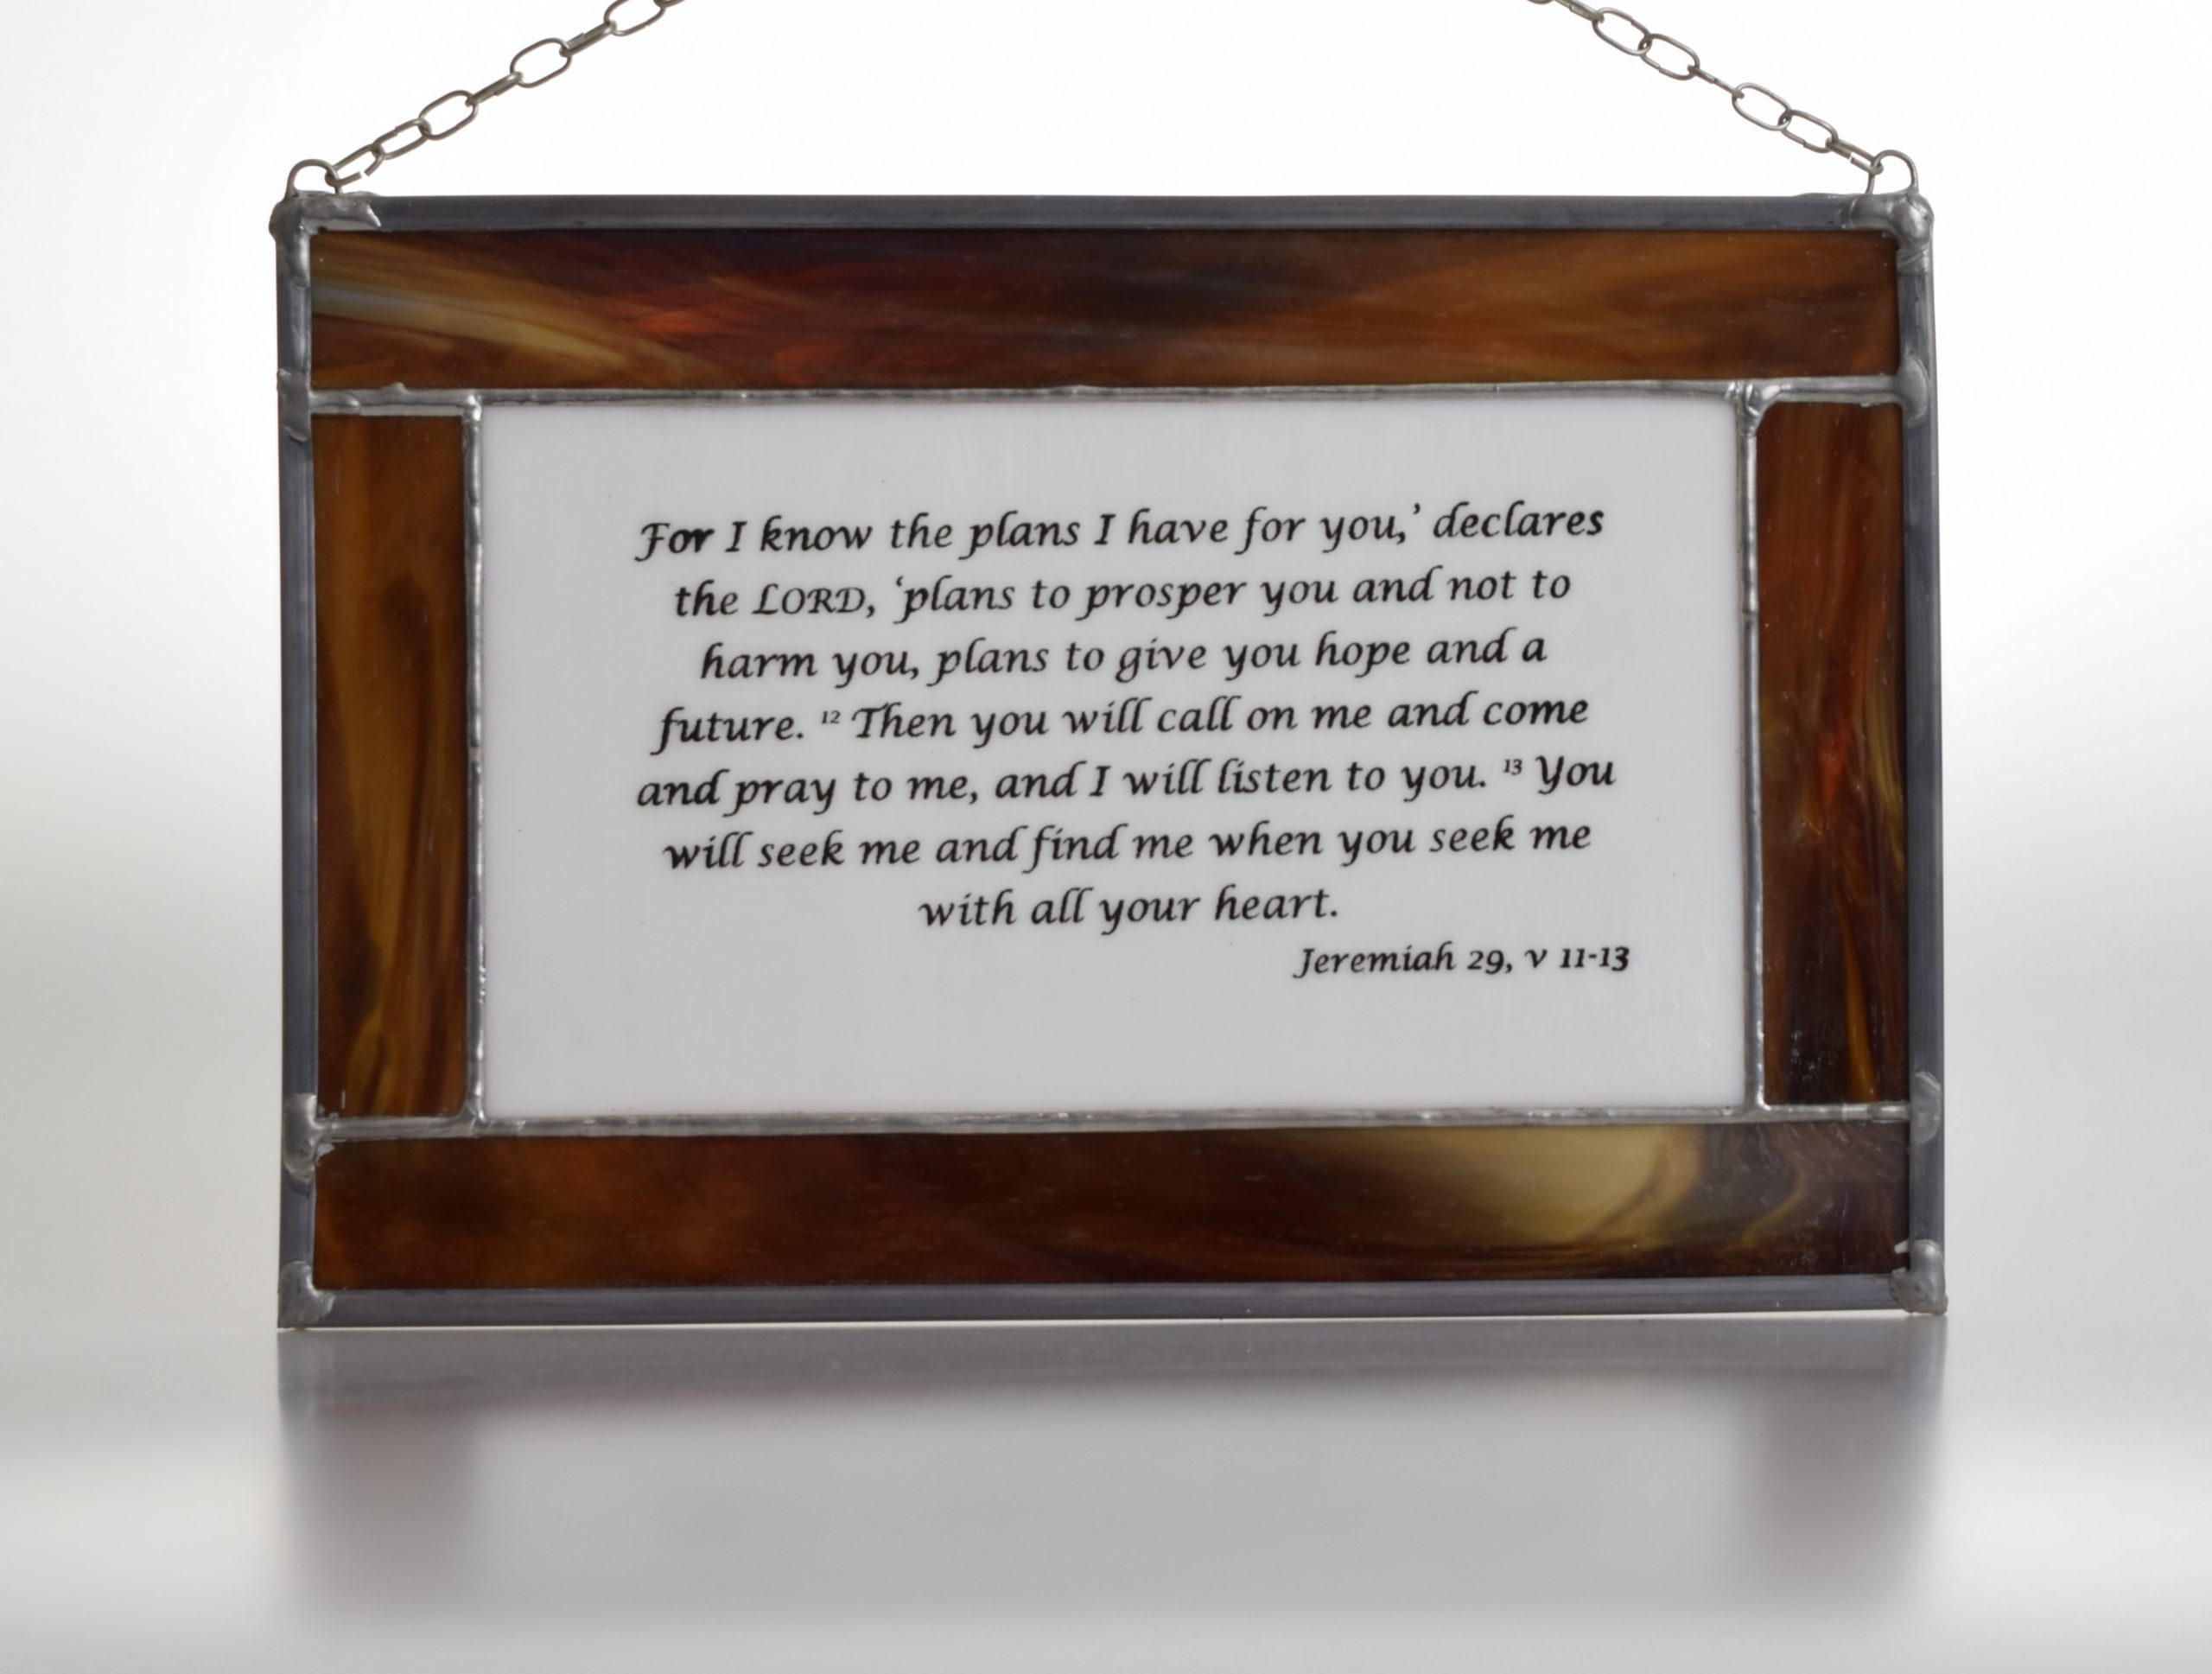 Stained glass panel featuring bible verse from Jeremiah 29, v 11-13